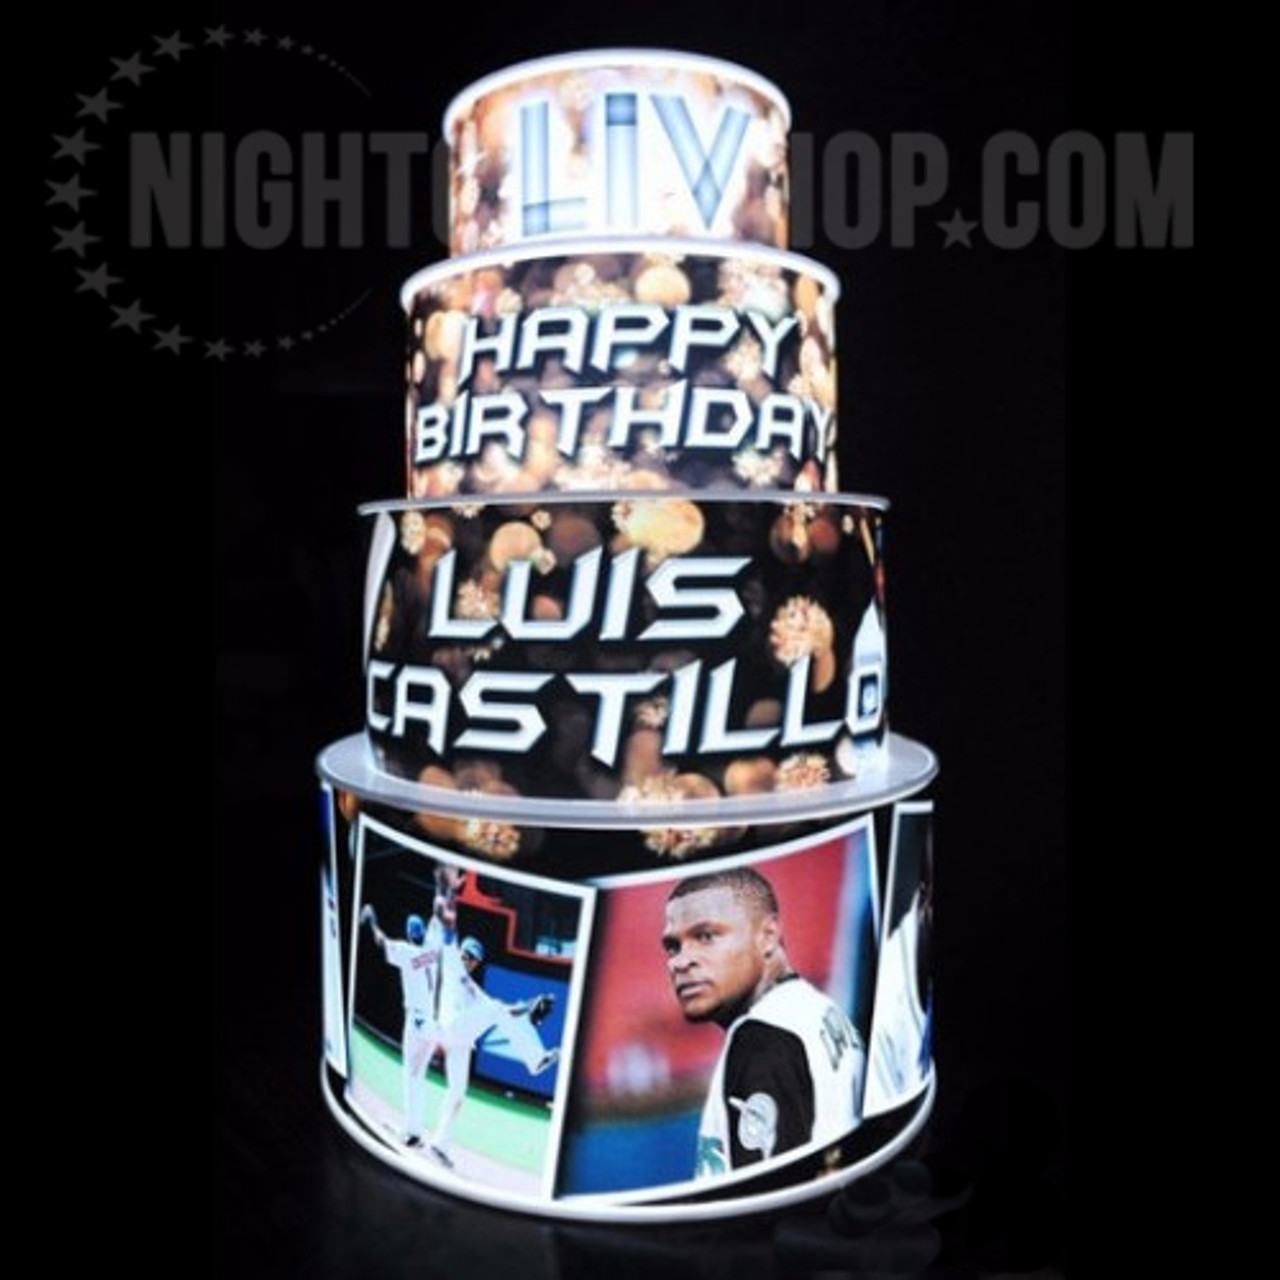 VIP Birthday, LED Cake, Birthday cake, Glow cake, Neon Cake, Light up Cake, Illuminated Cake, LED, Cake,wedding cake